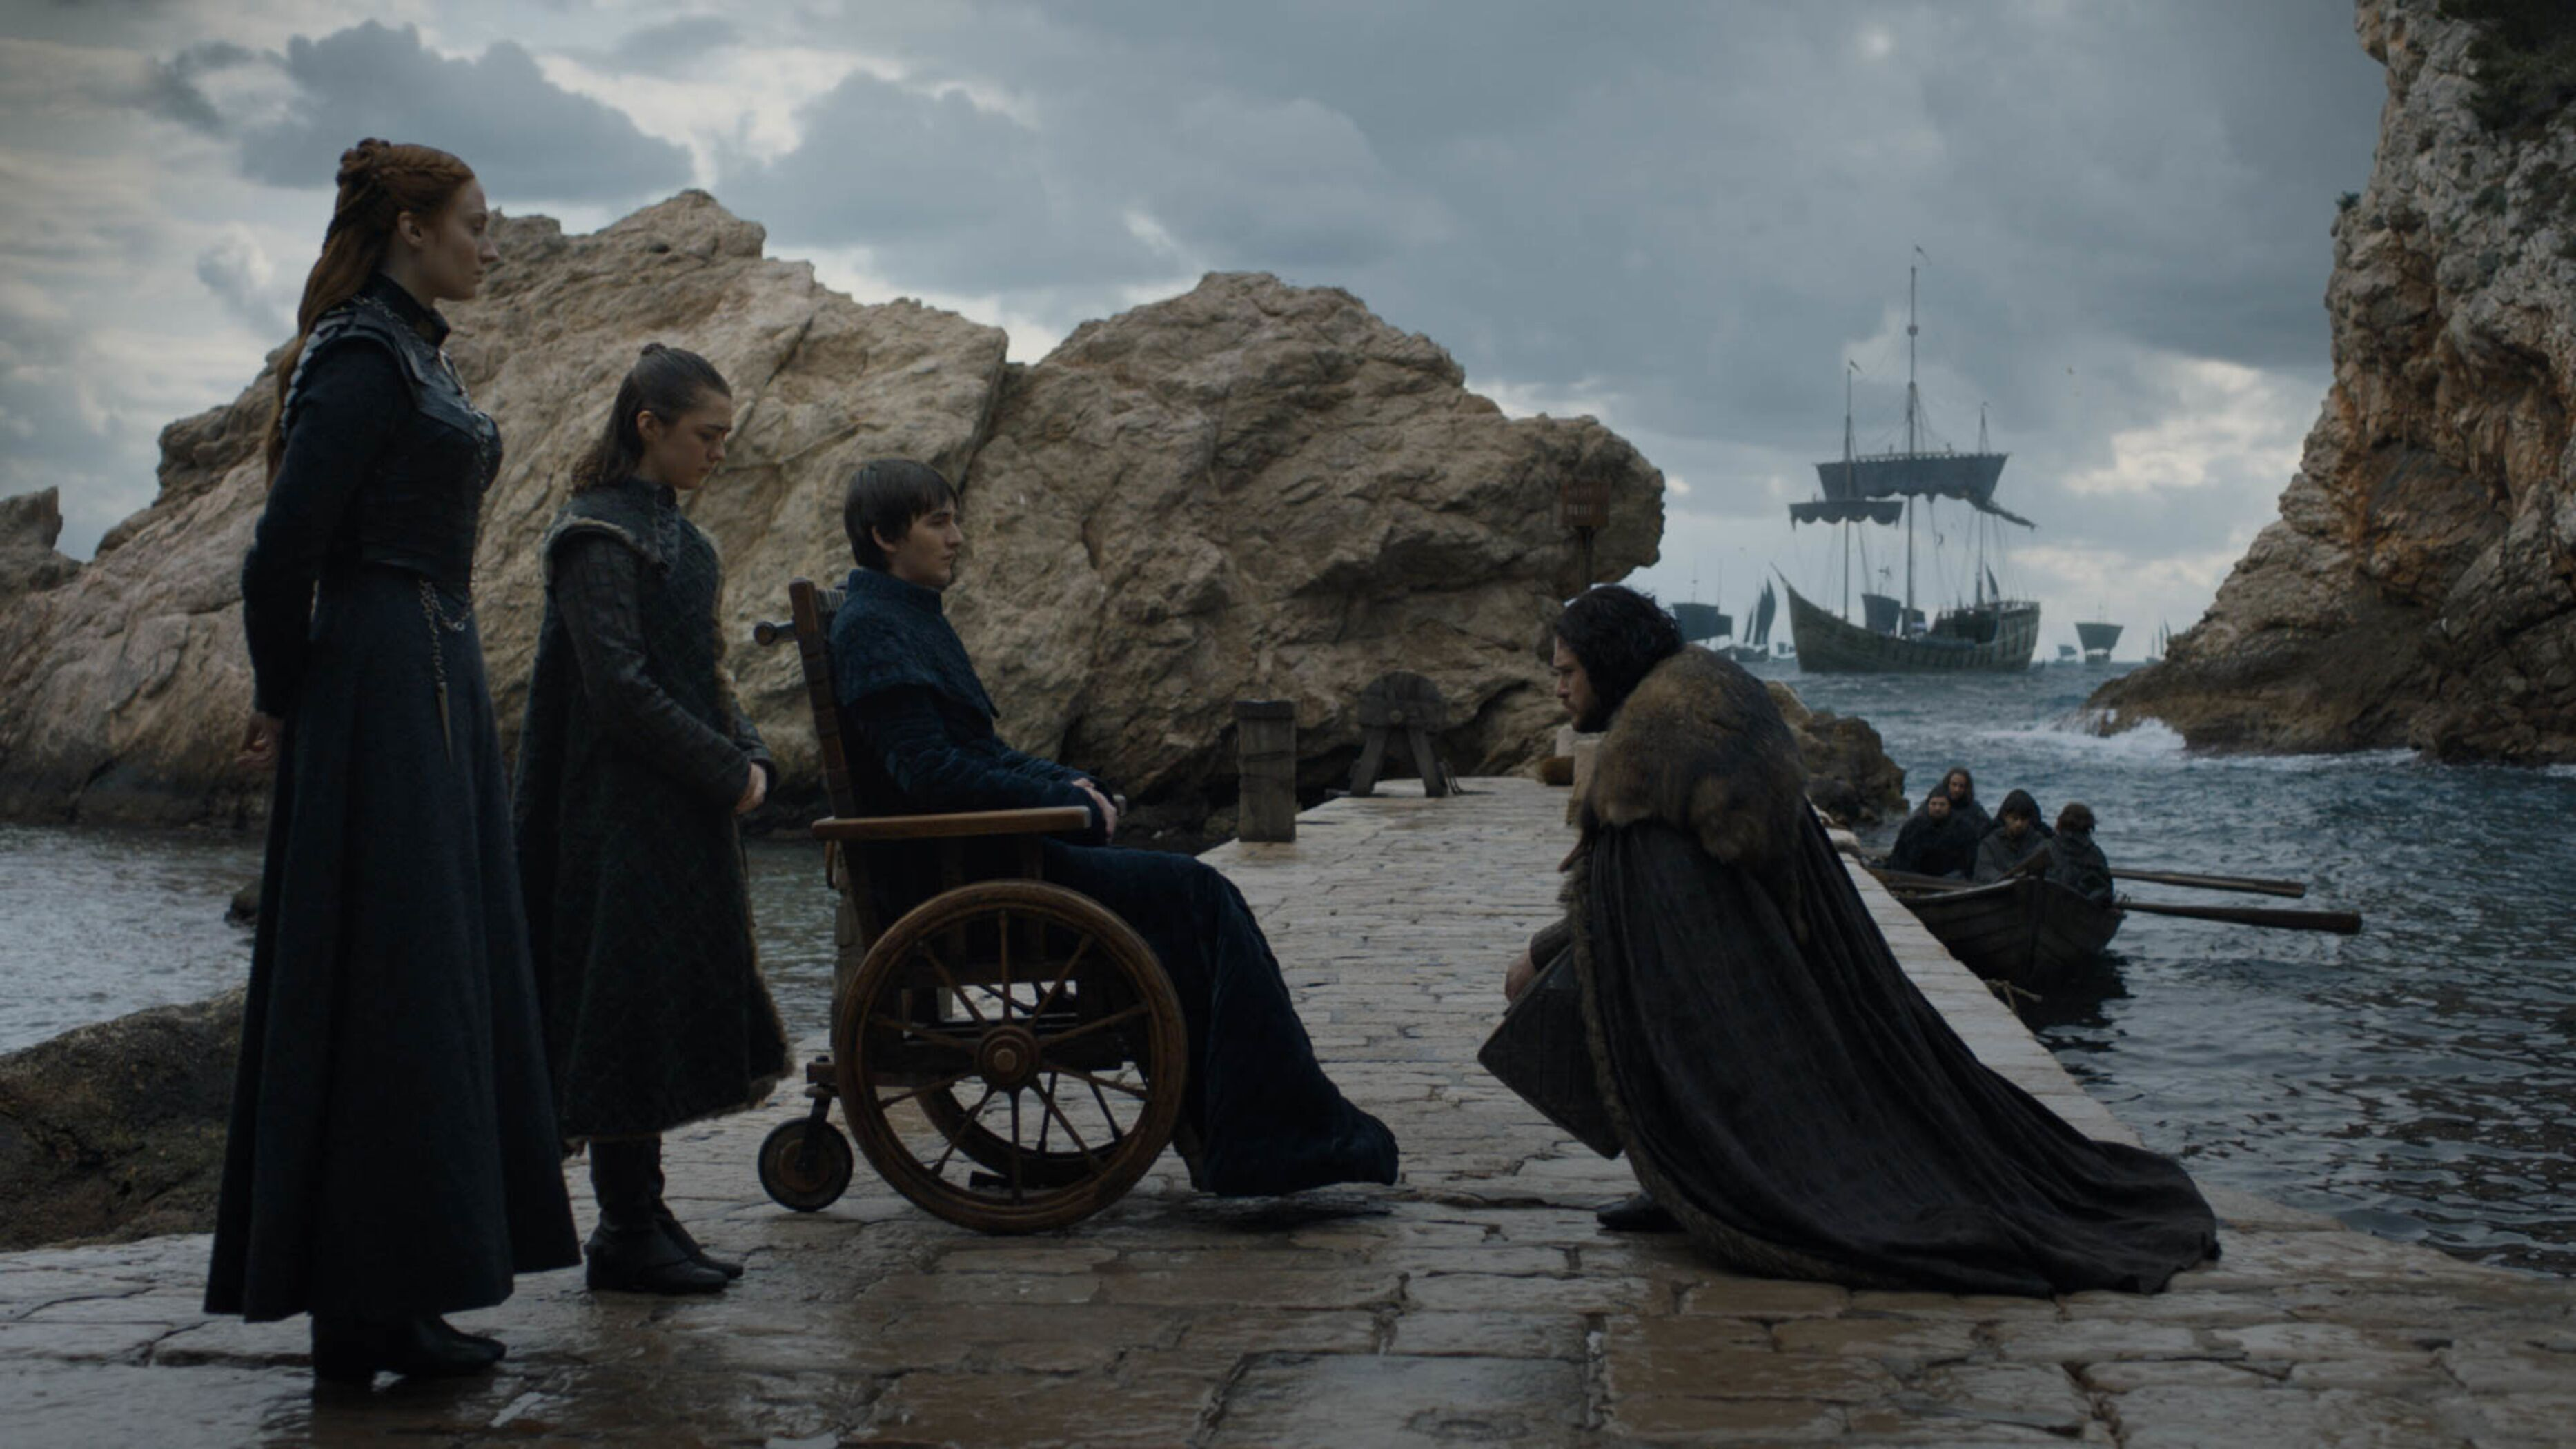 The Game of Thrones ratings from critics and fans are sad to look at